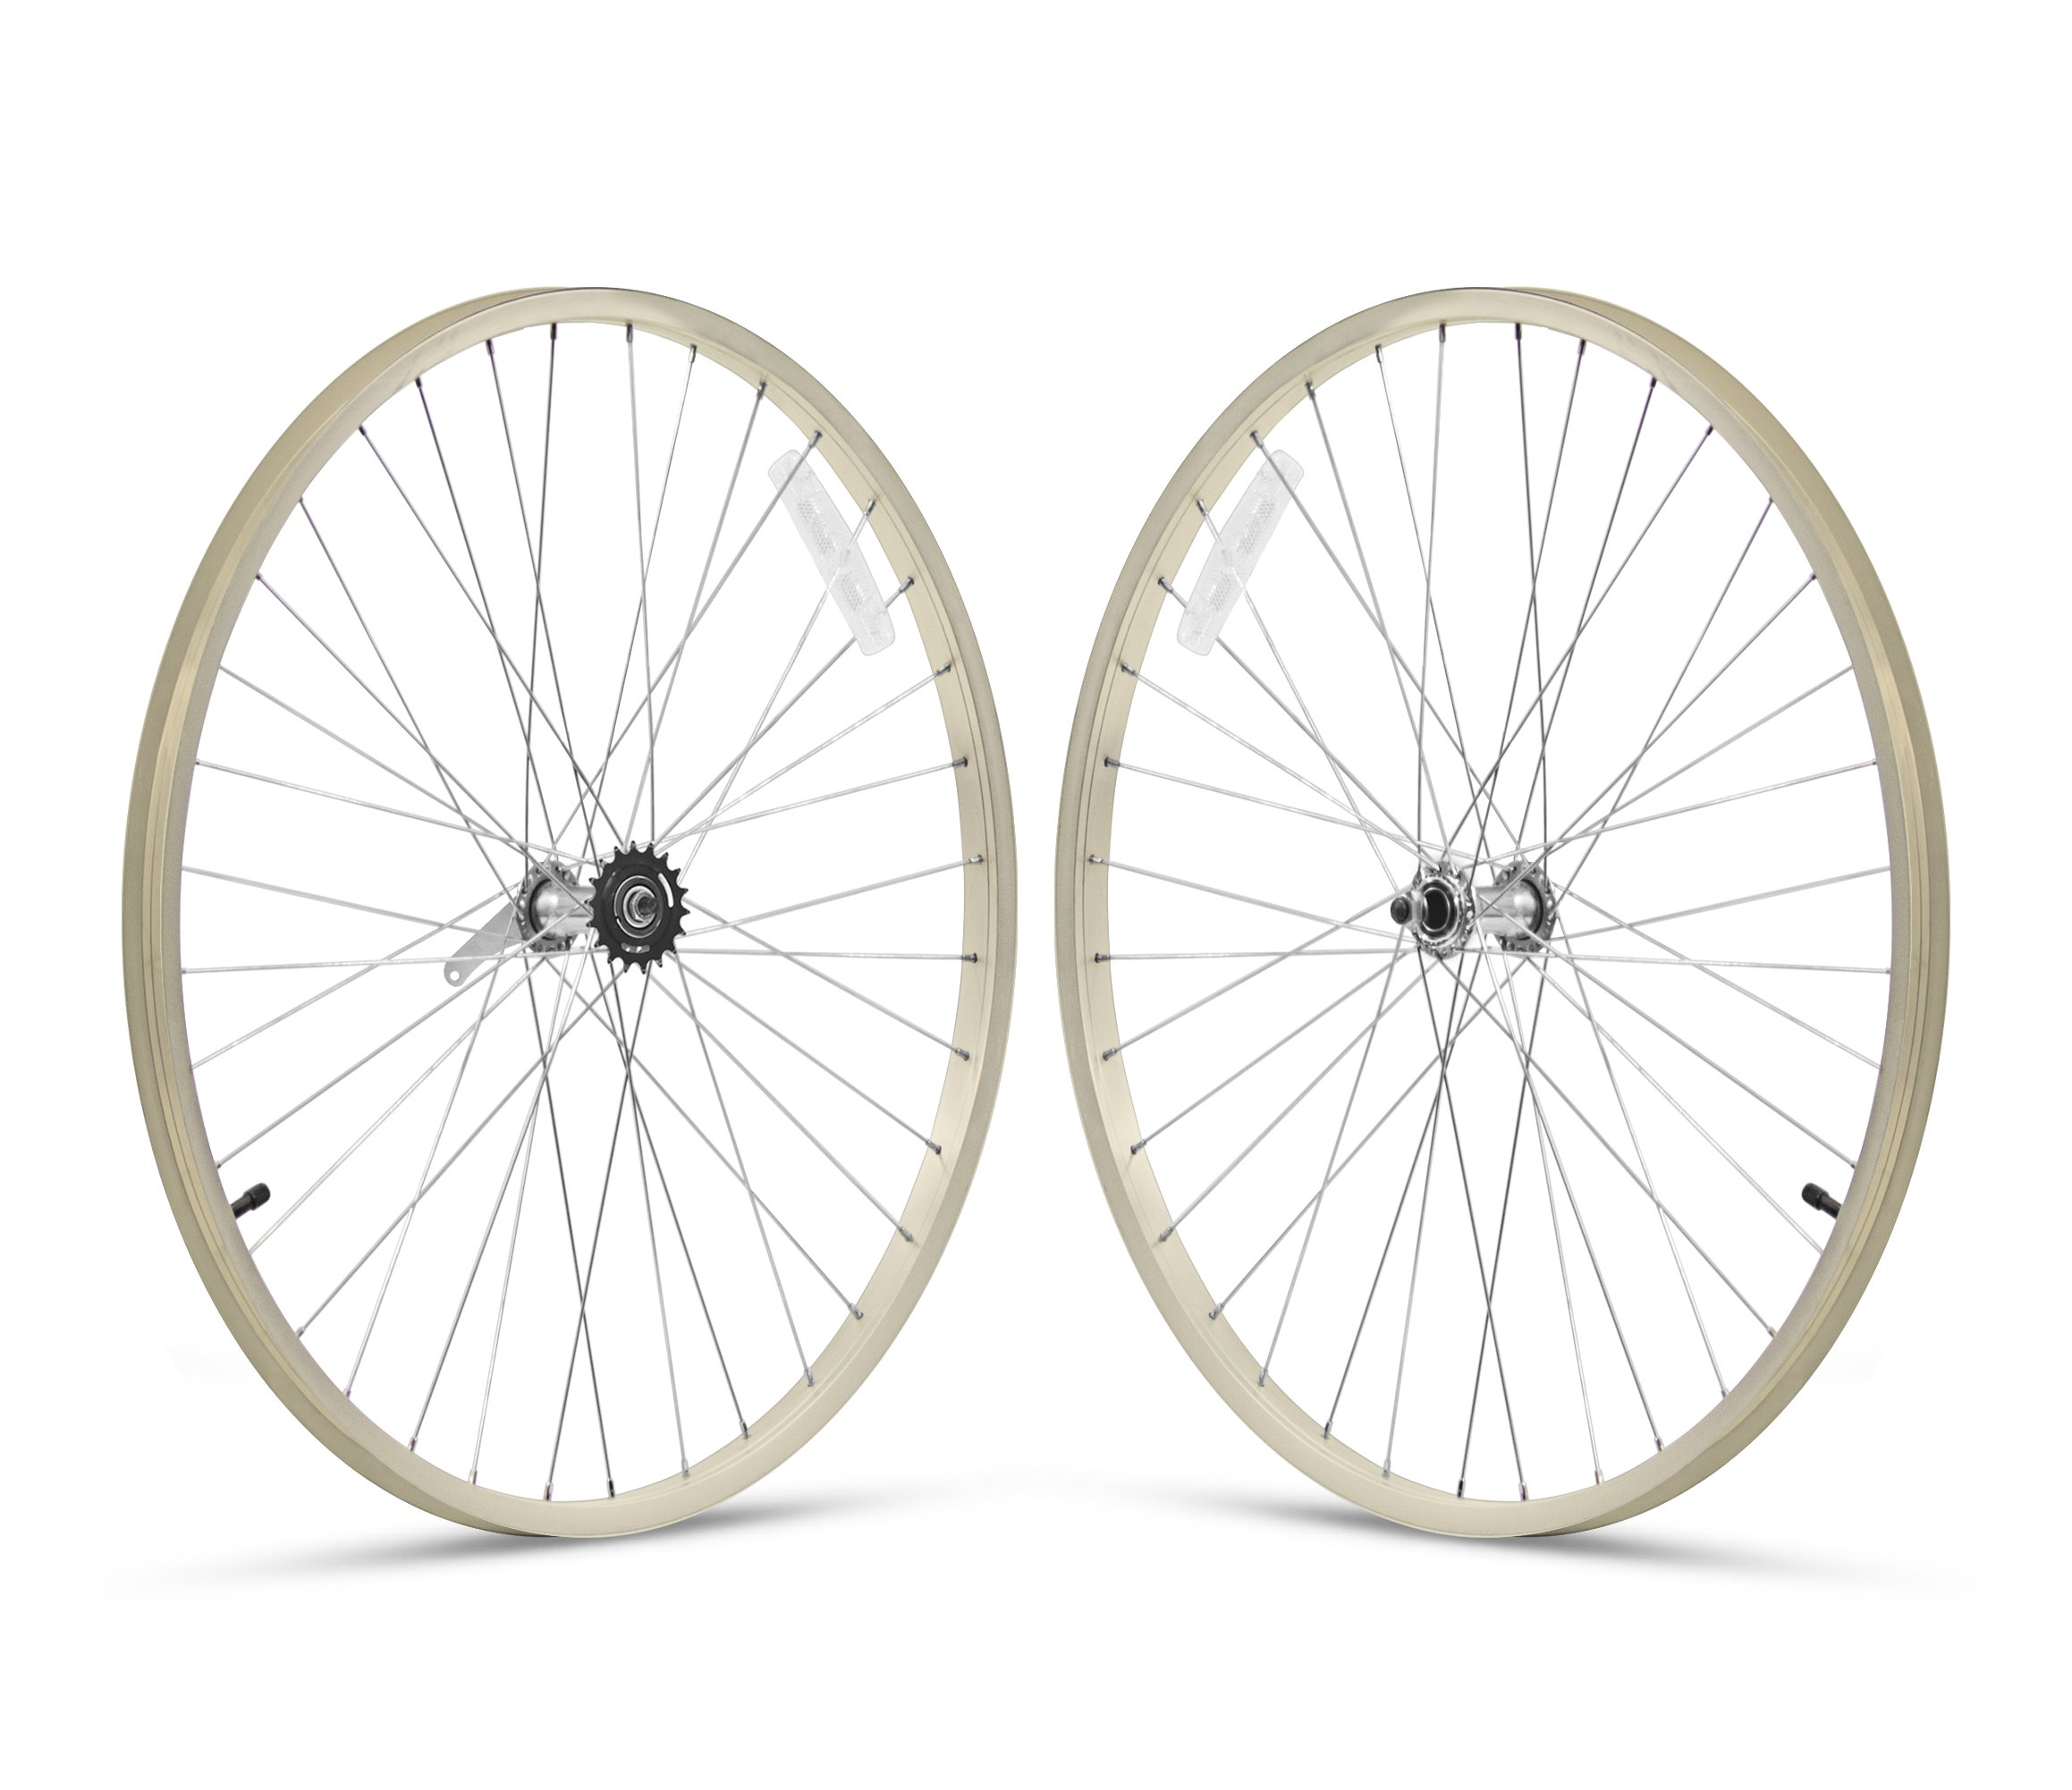 Firmstrong 1-Speed Beach Cruiser Bicycle Wheelset, Front/Rear, Vanilla, 26''